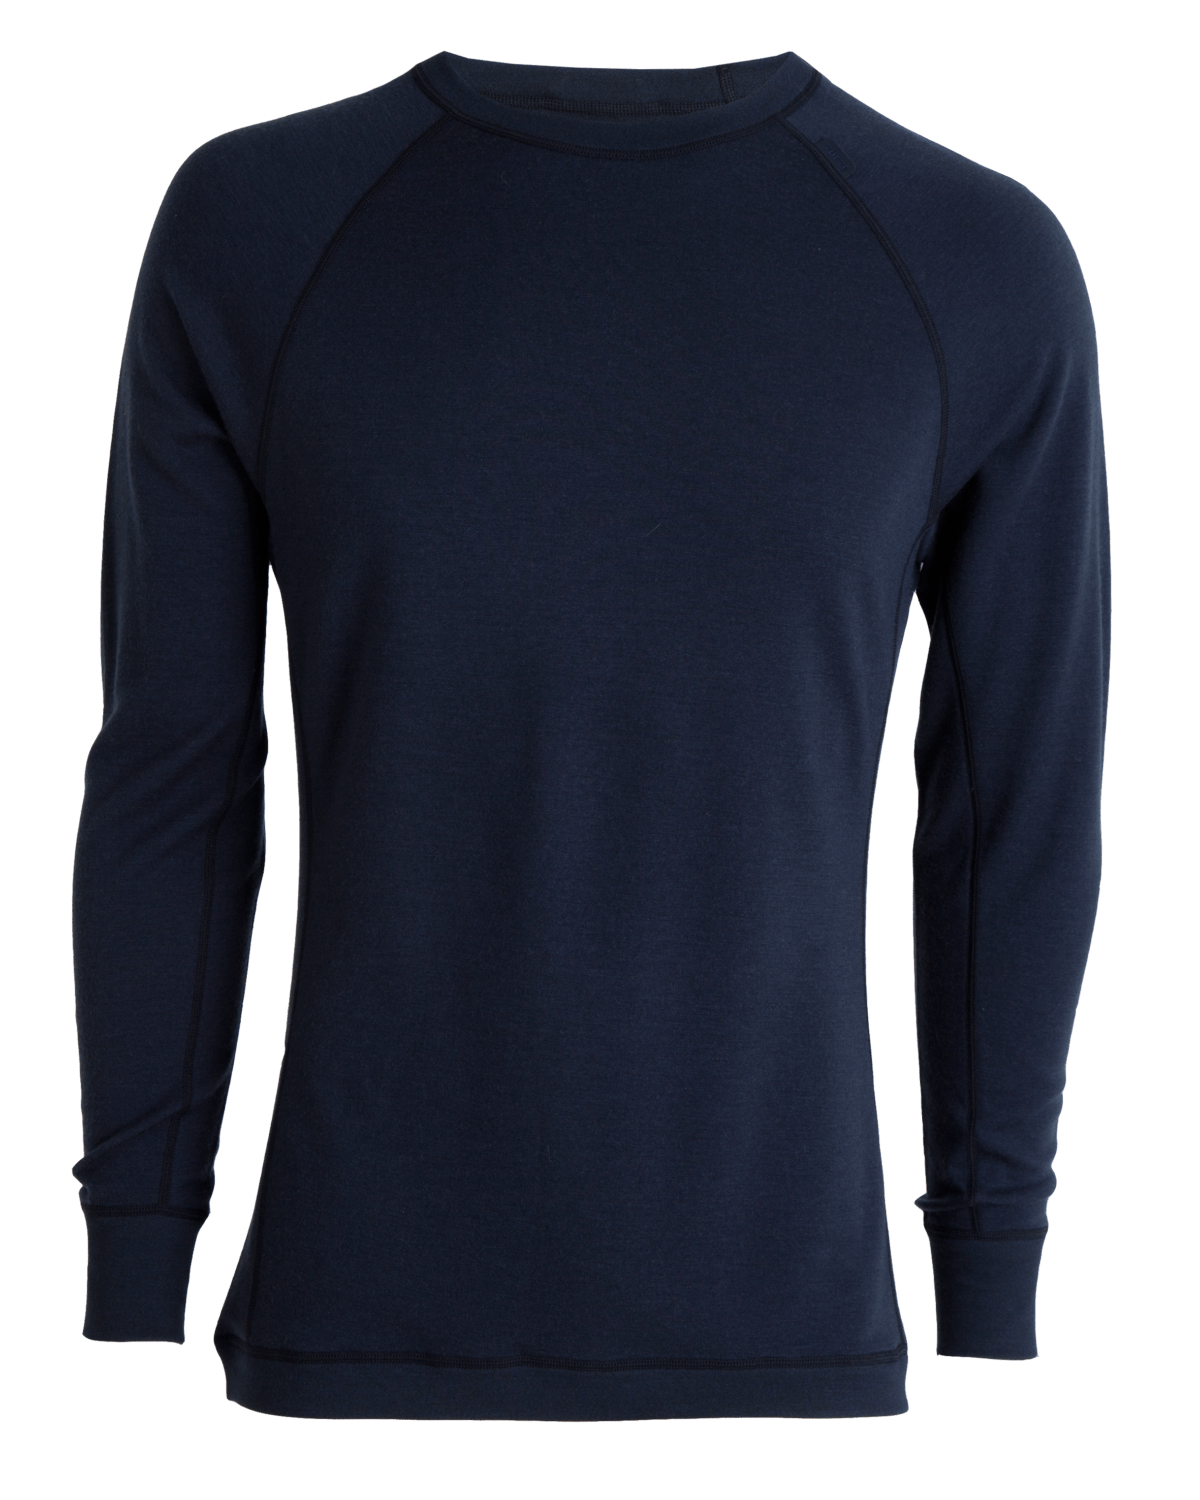 AW18 Tufte Bambull Crew Neck Men Blueberry Front